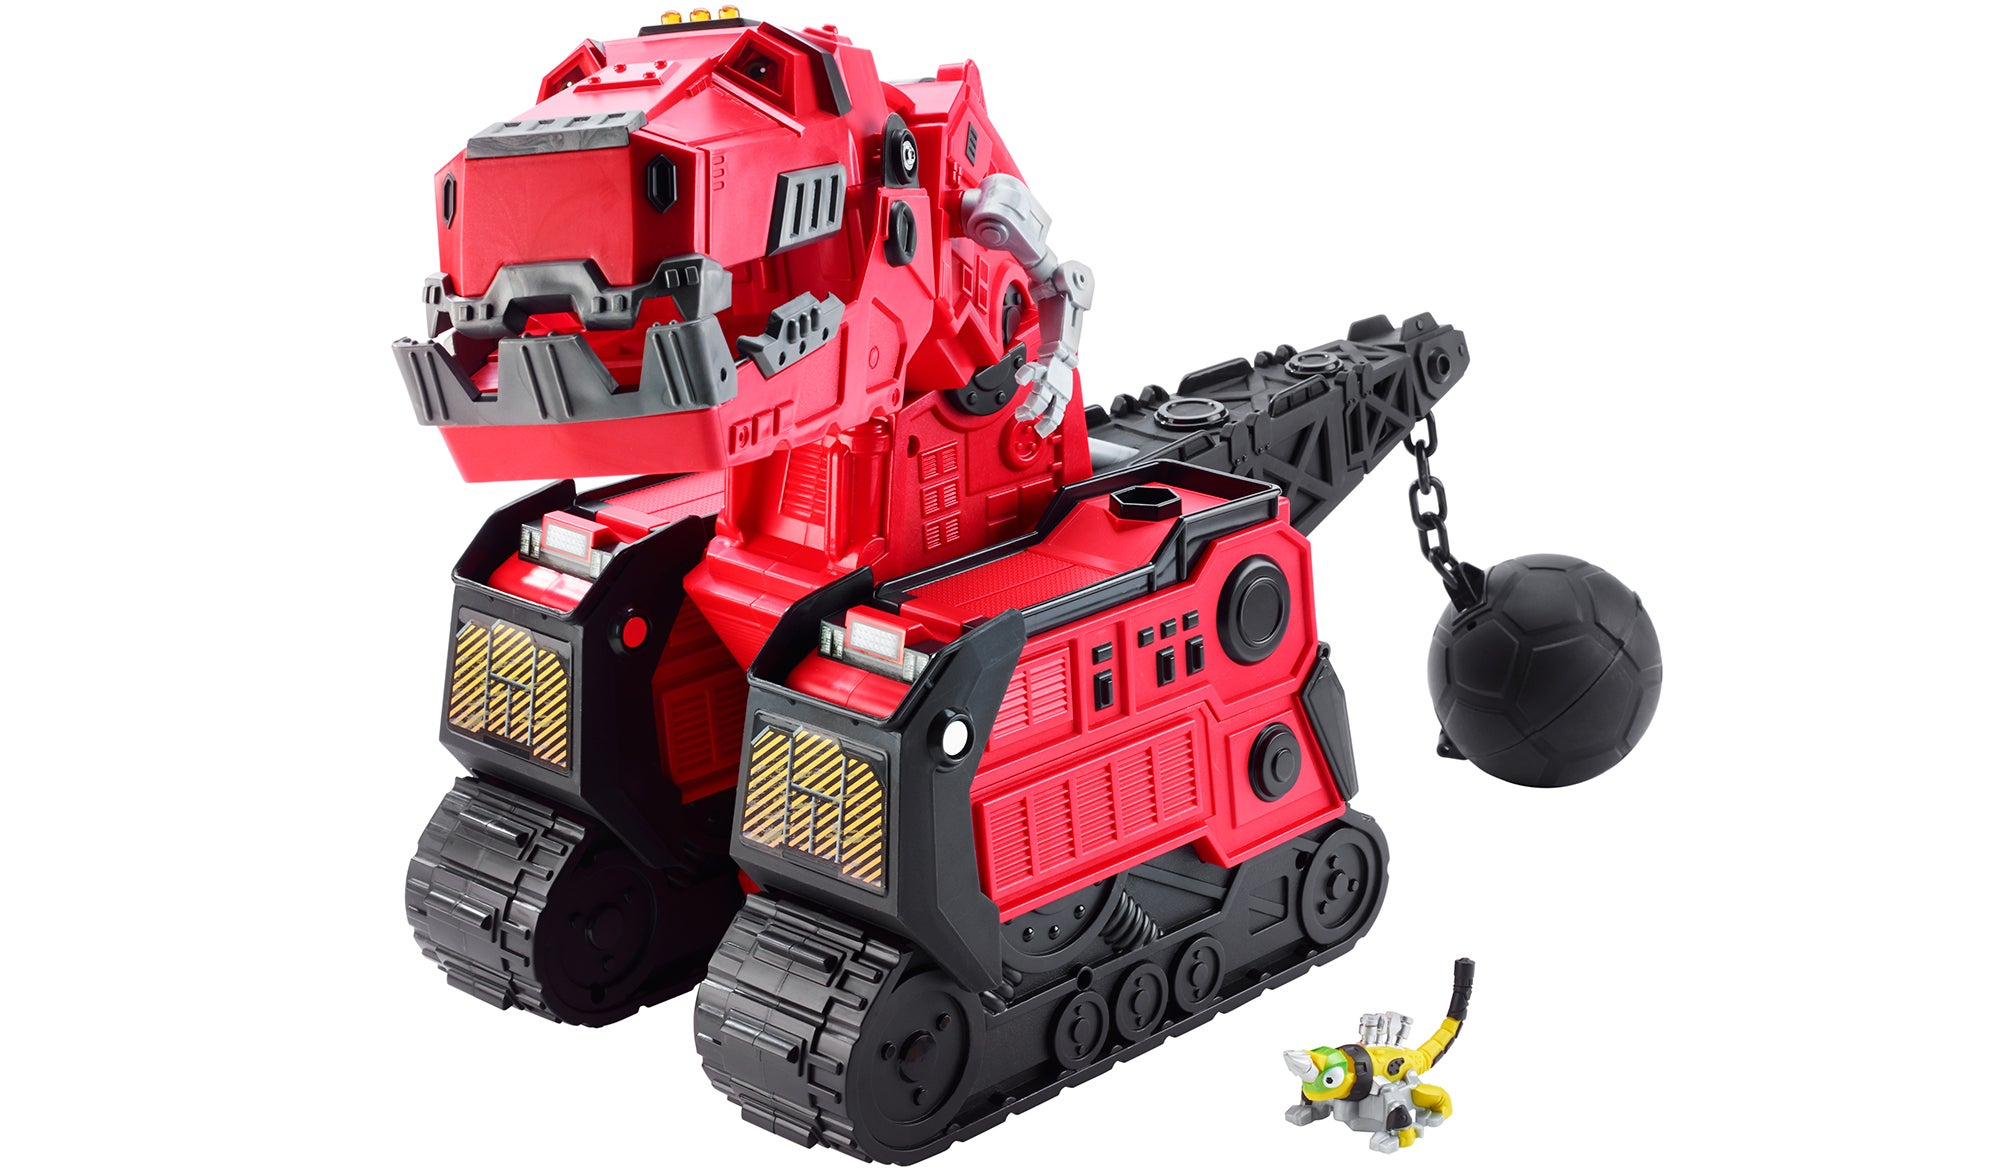 Dino-Robot Toys Are Cool. Dino-Robot-Construction-Truck Toys Are Incredible